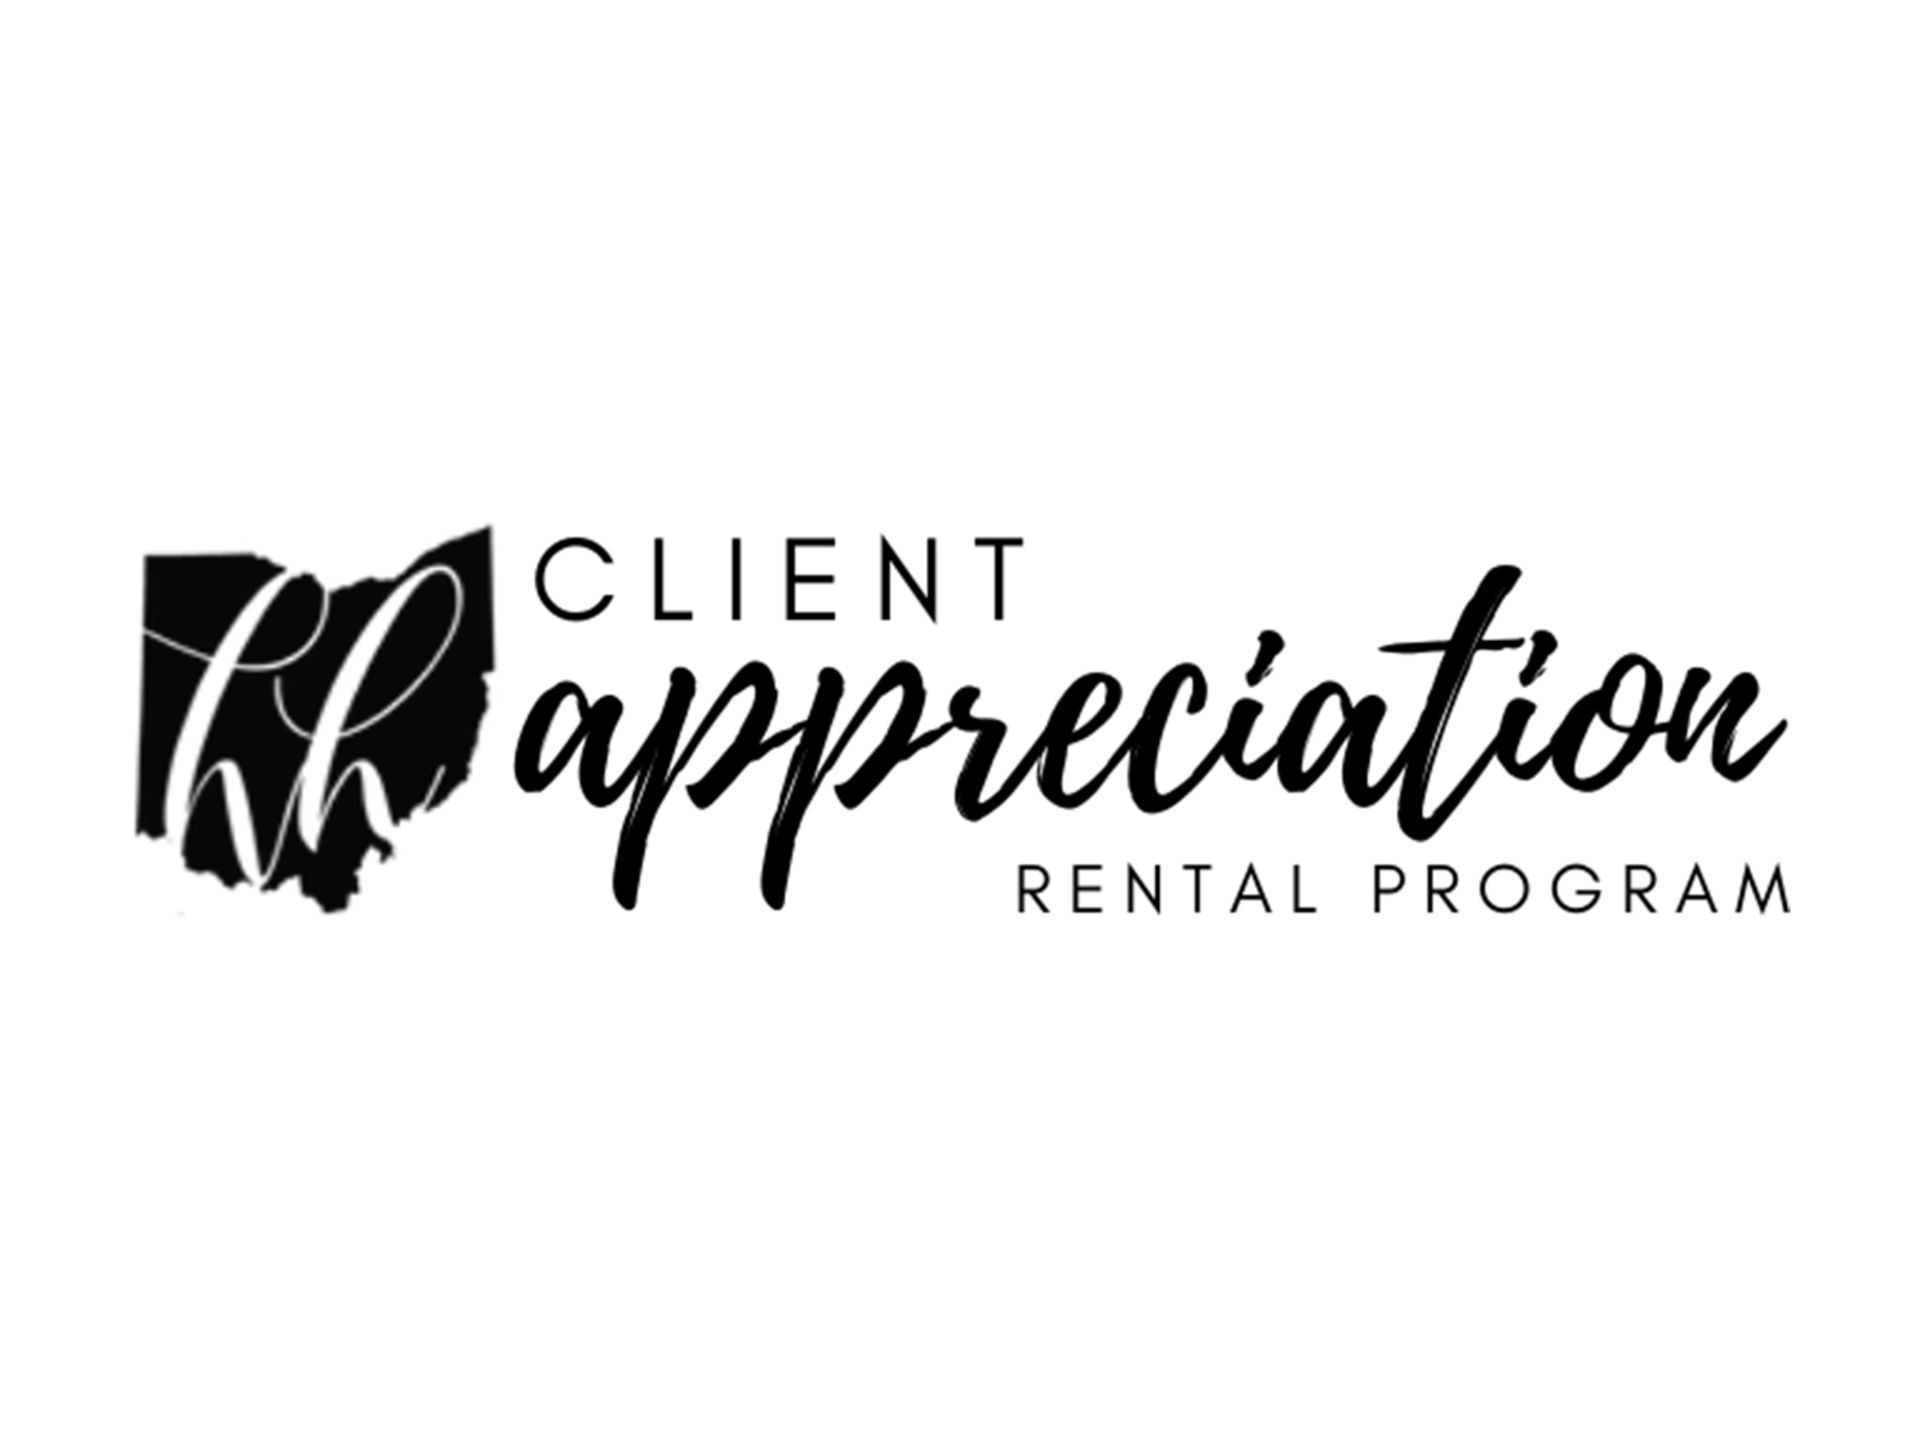 FREE! Client Appreciation Rental Program